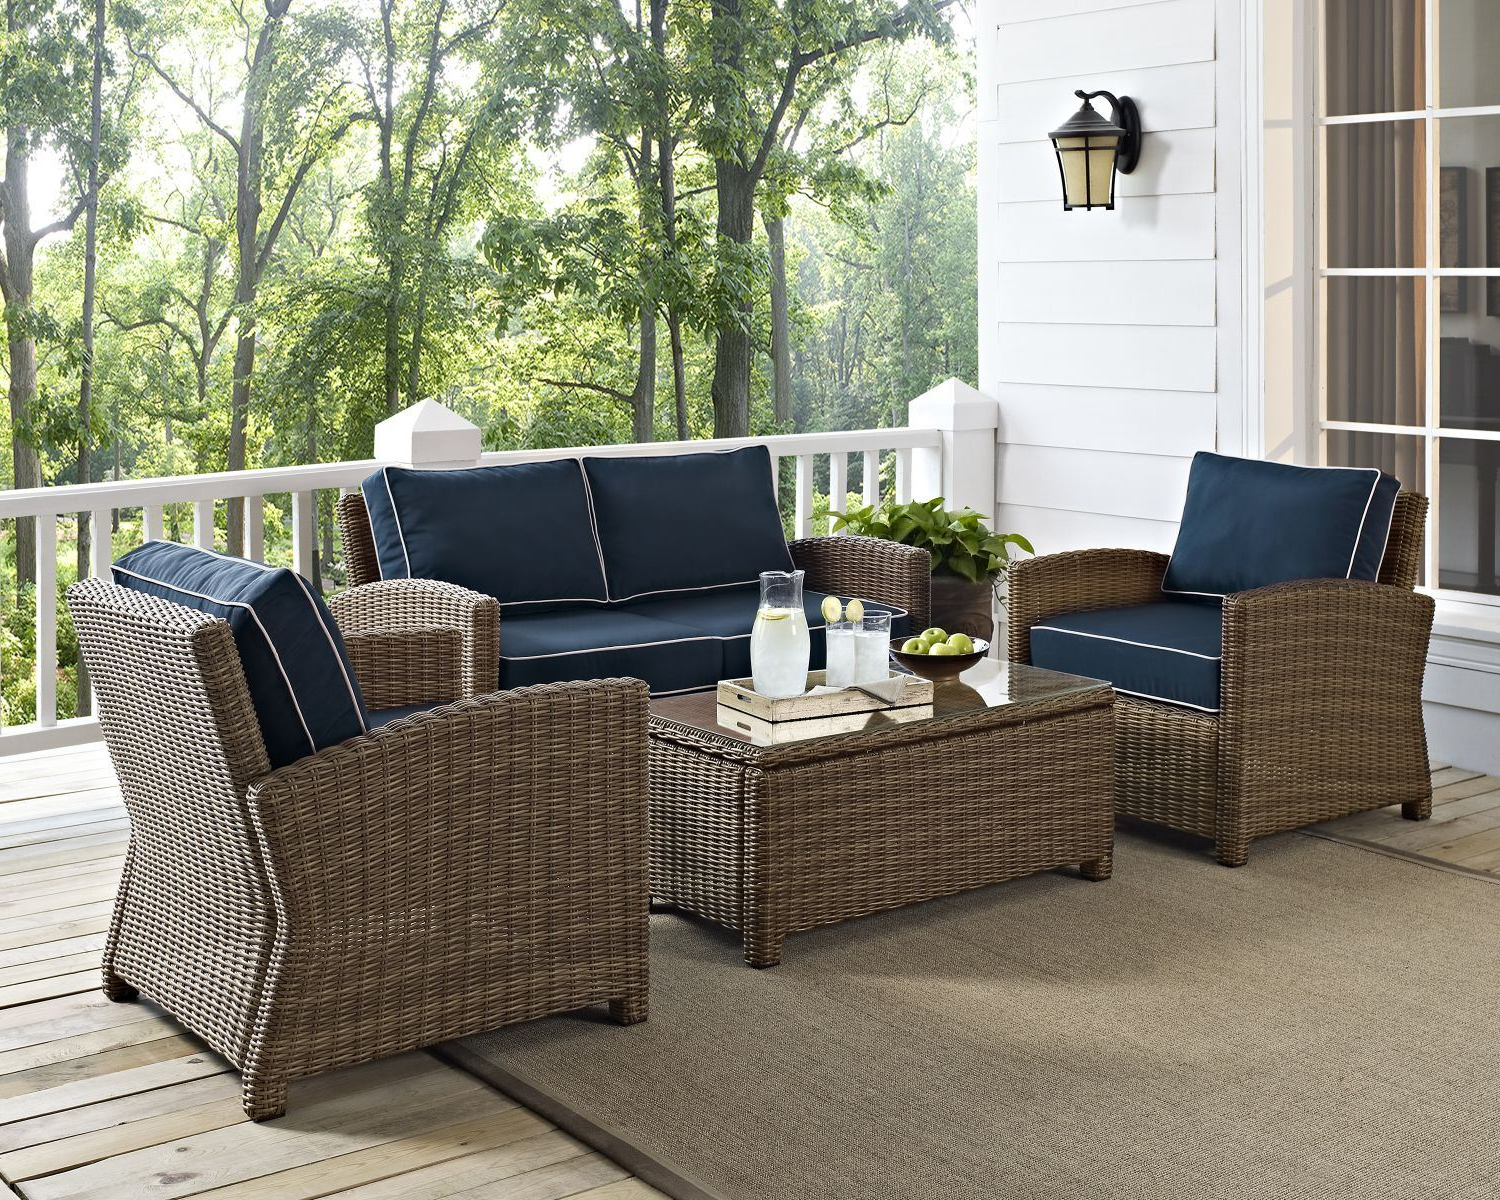 Bradenton 4 Piece Outdoor Wicker Seating Set/navy Cushions Throughout Most Current Bradenton Outdoor Wicker Chaise Lounges With Cushions (View 10 of 25)